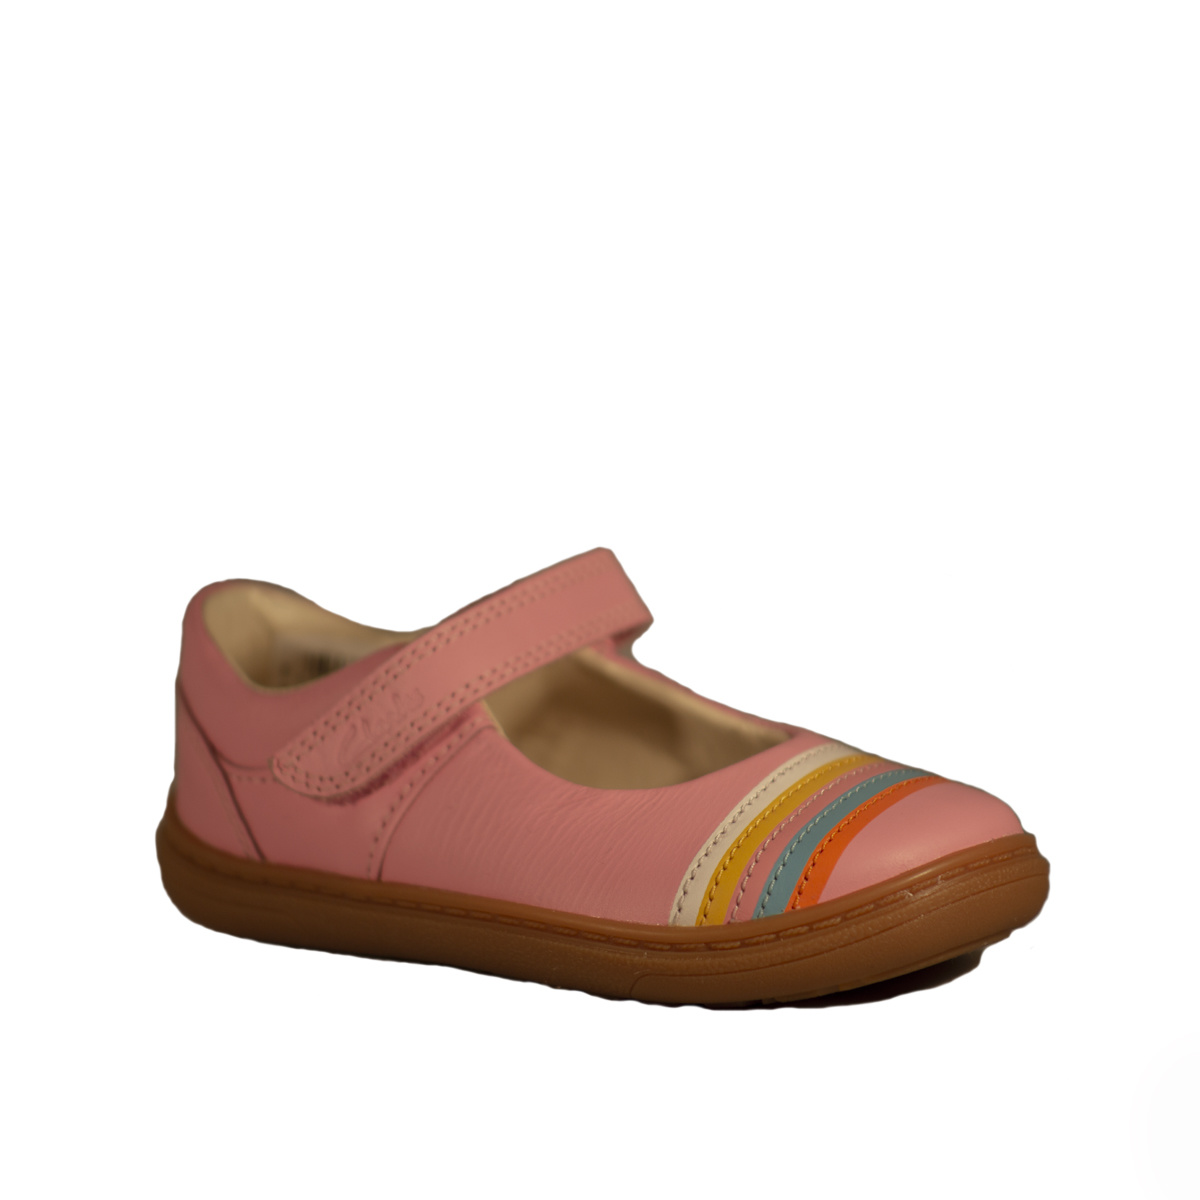 Clarks Flash Rain Bright Pink